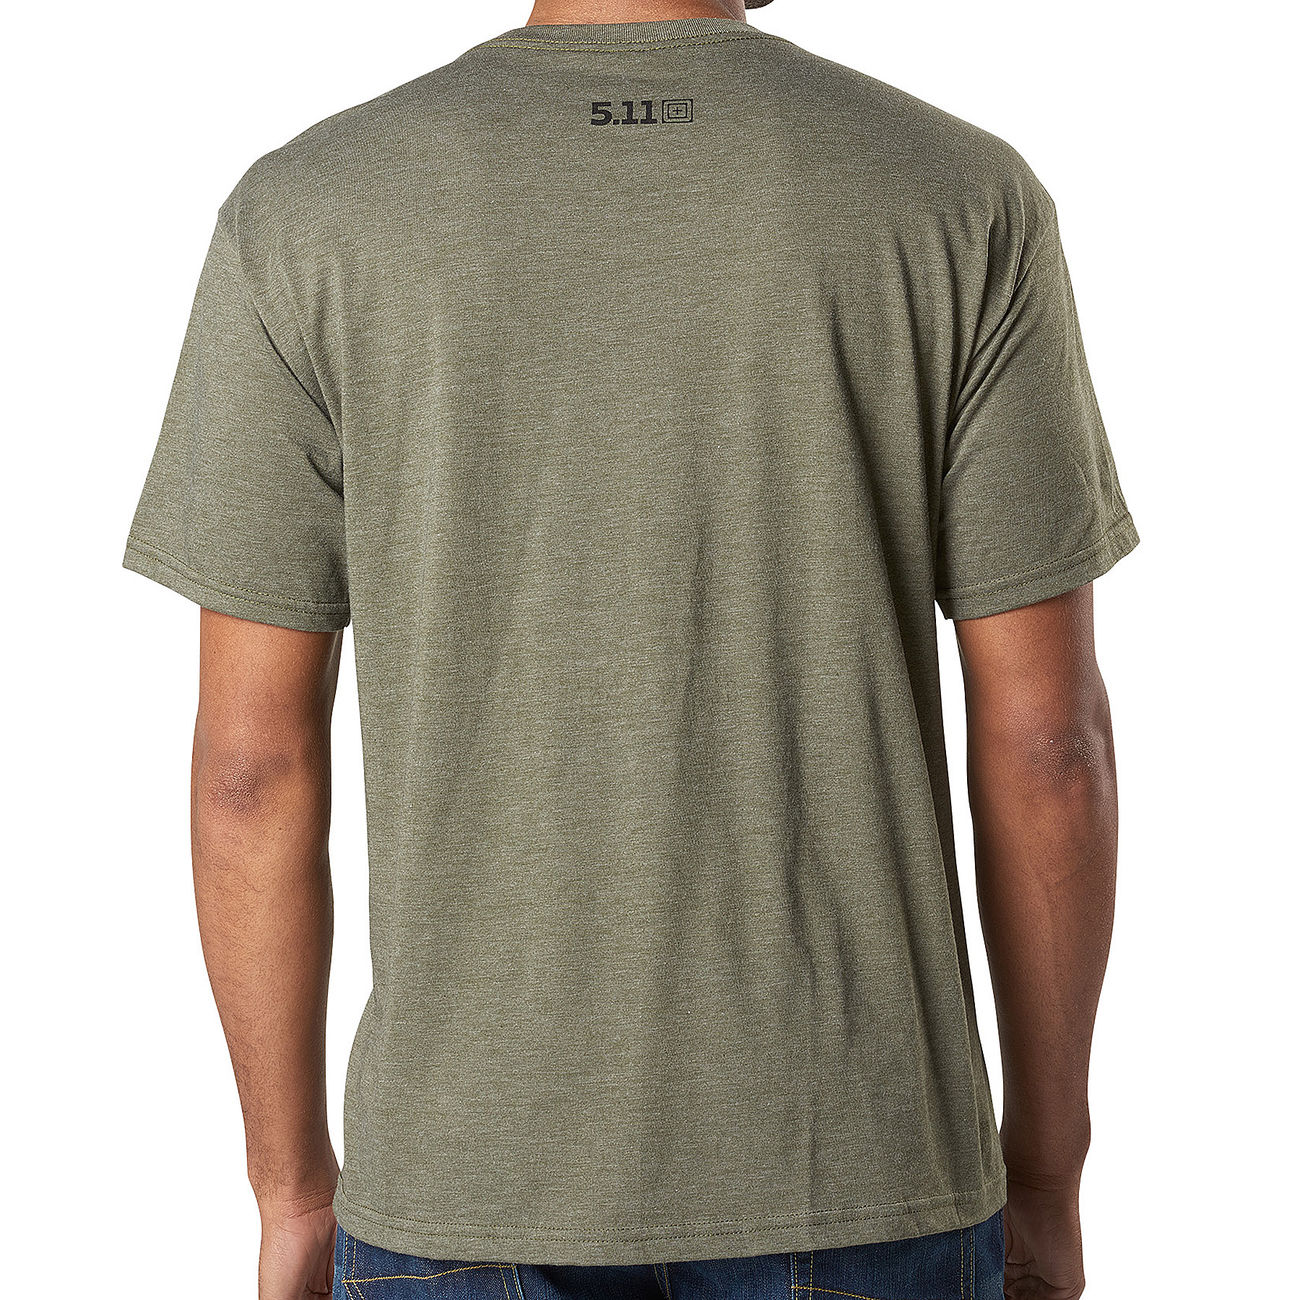 5.11 T-Shirt George Tactical military green heather 1